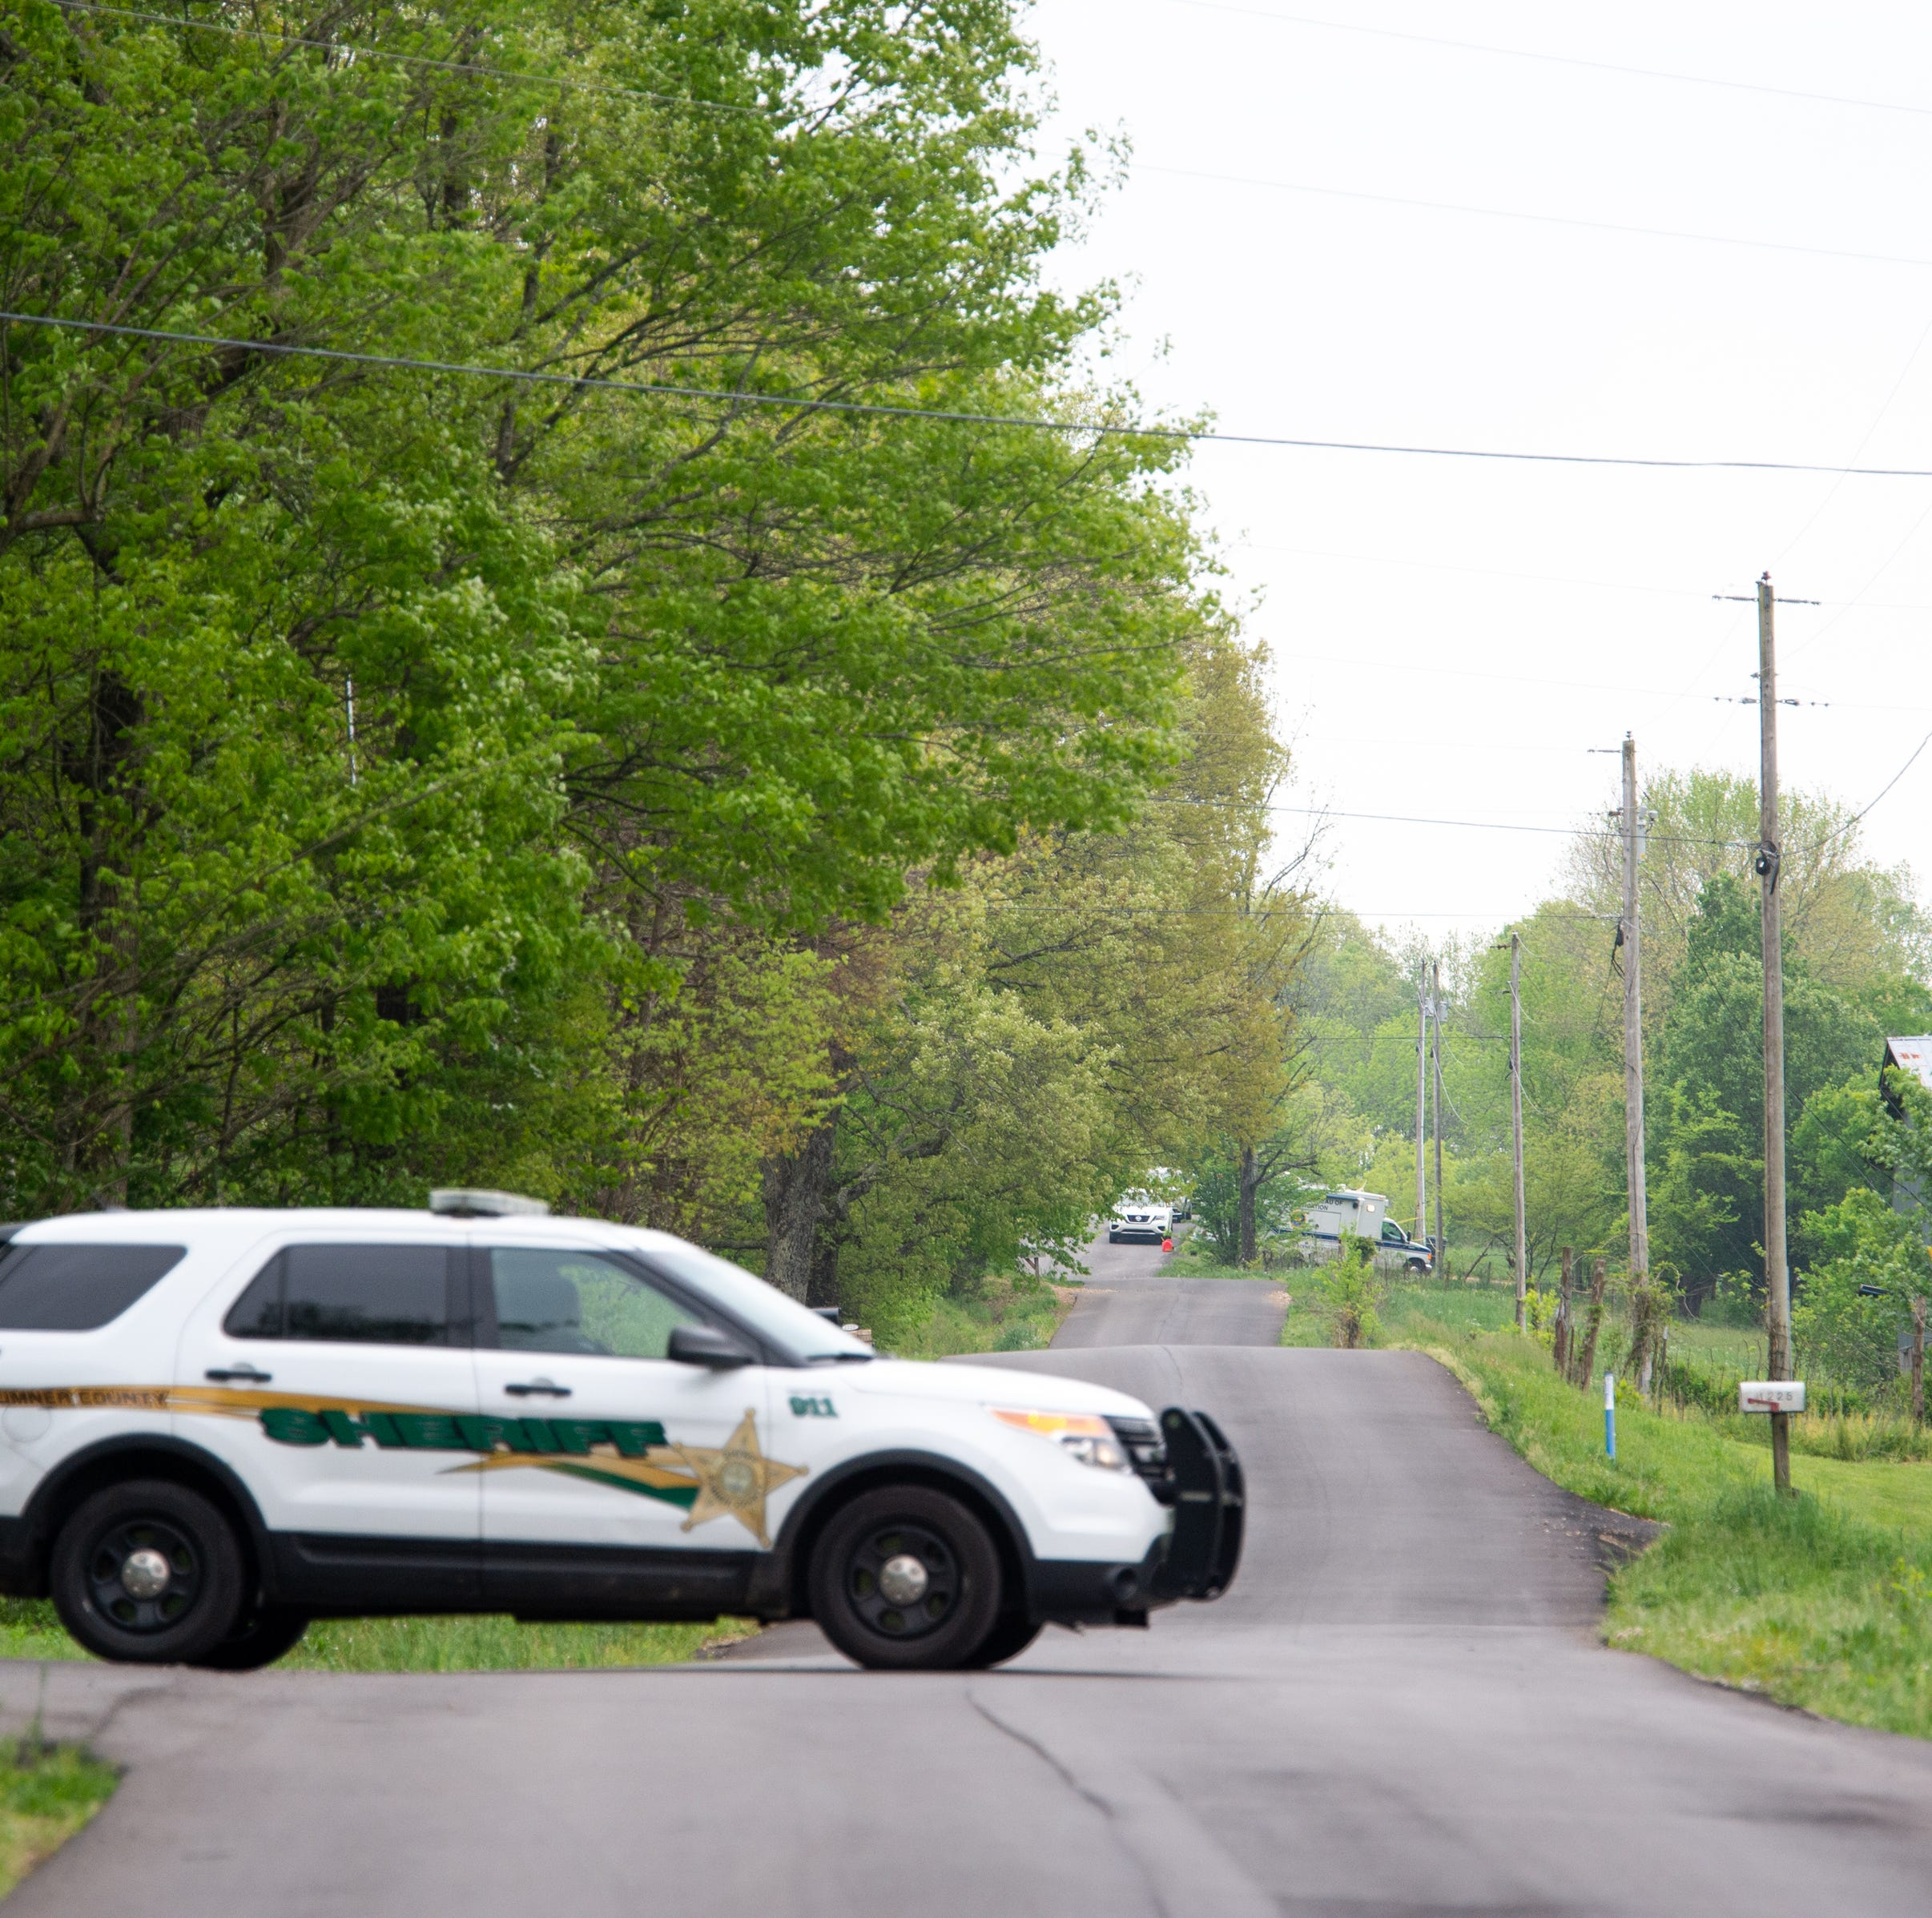 Seven killed in Sumner County: Timeline of 'horrific' discovery, manhunt and investigation